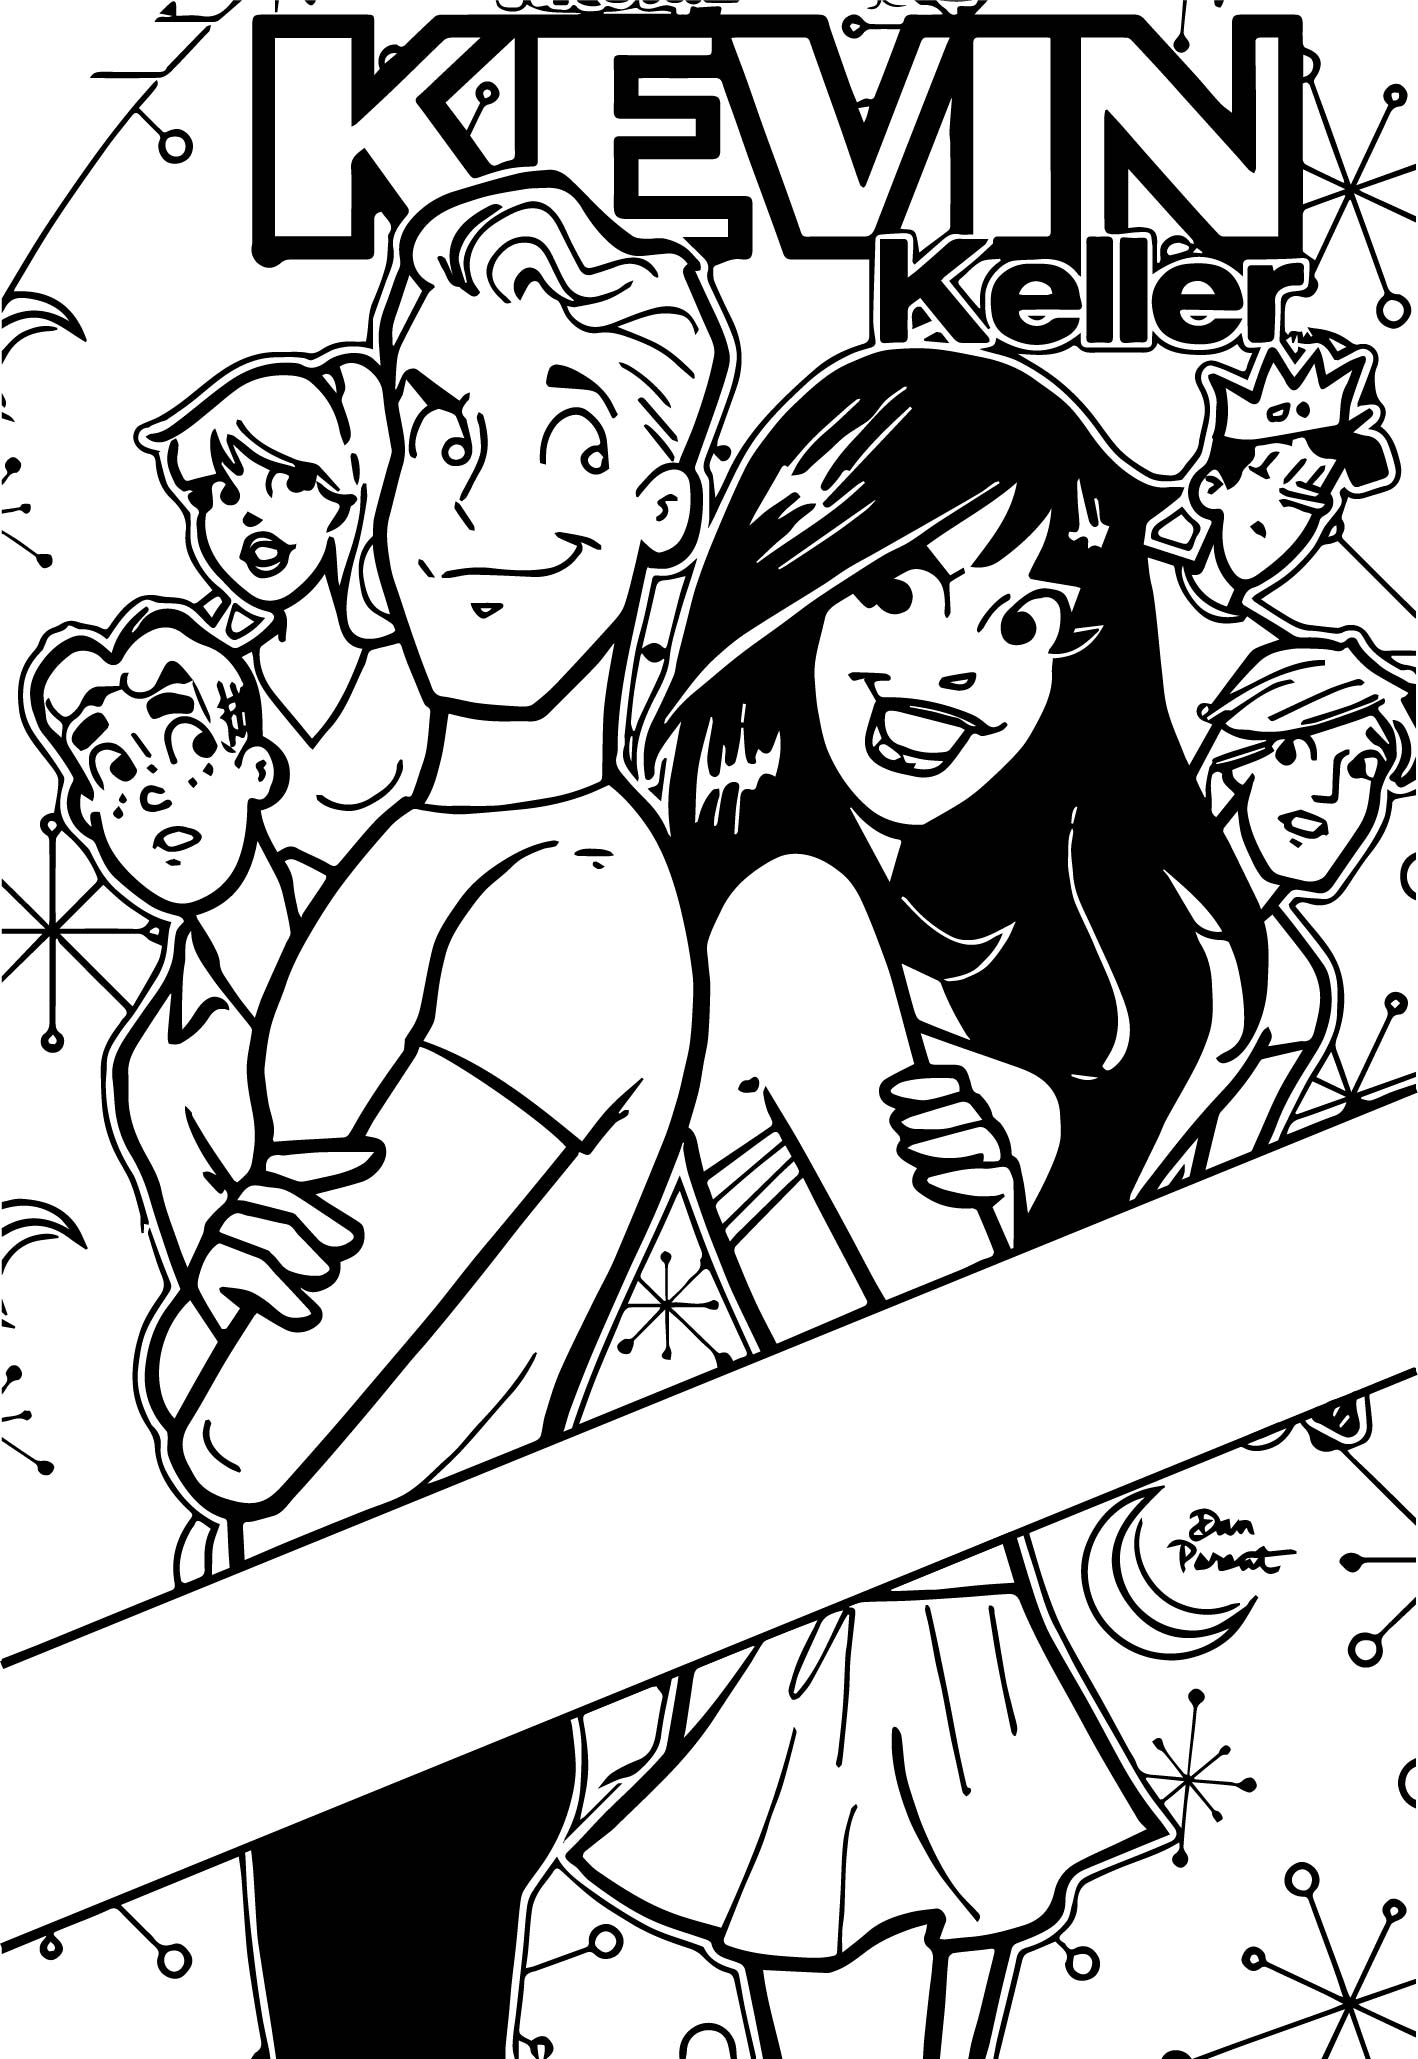 Kevin Keller Coloring Page